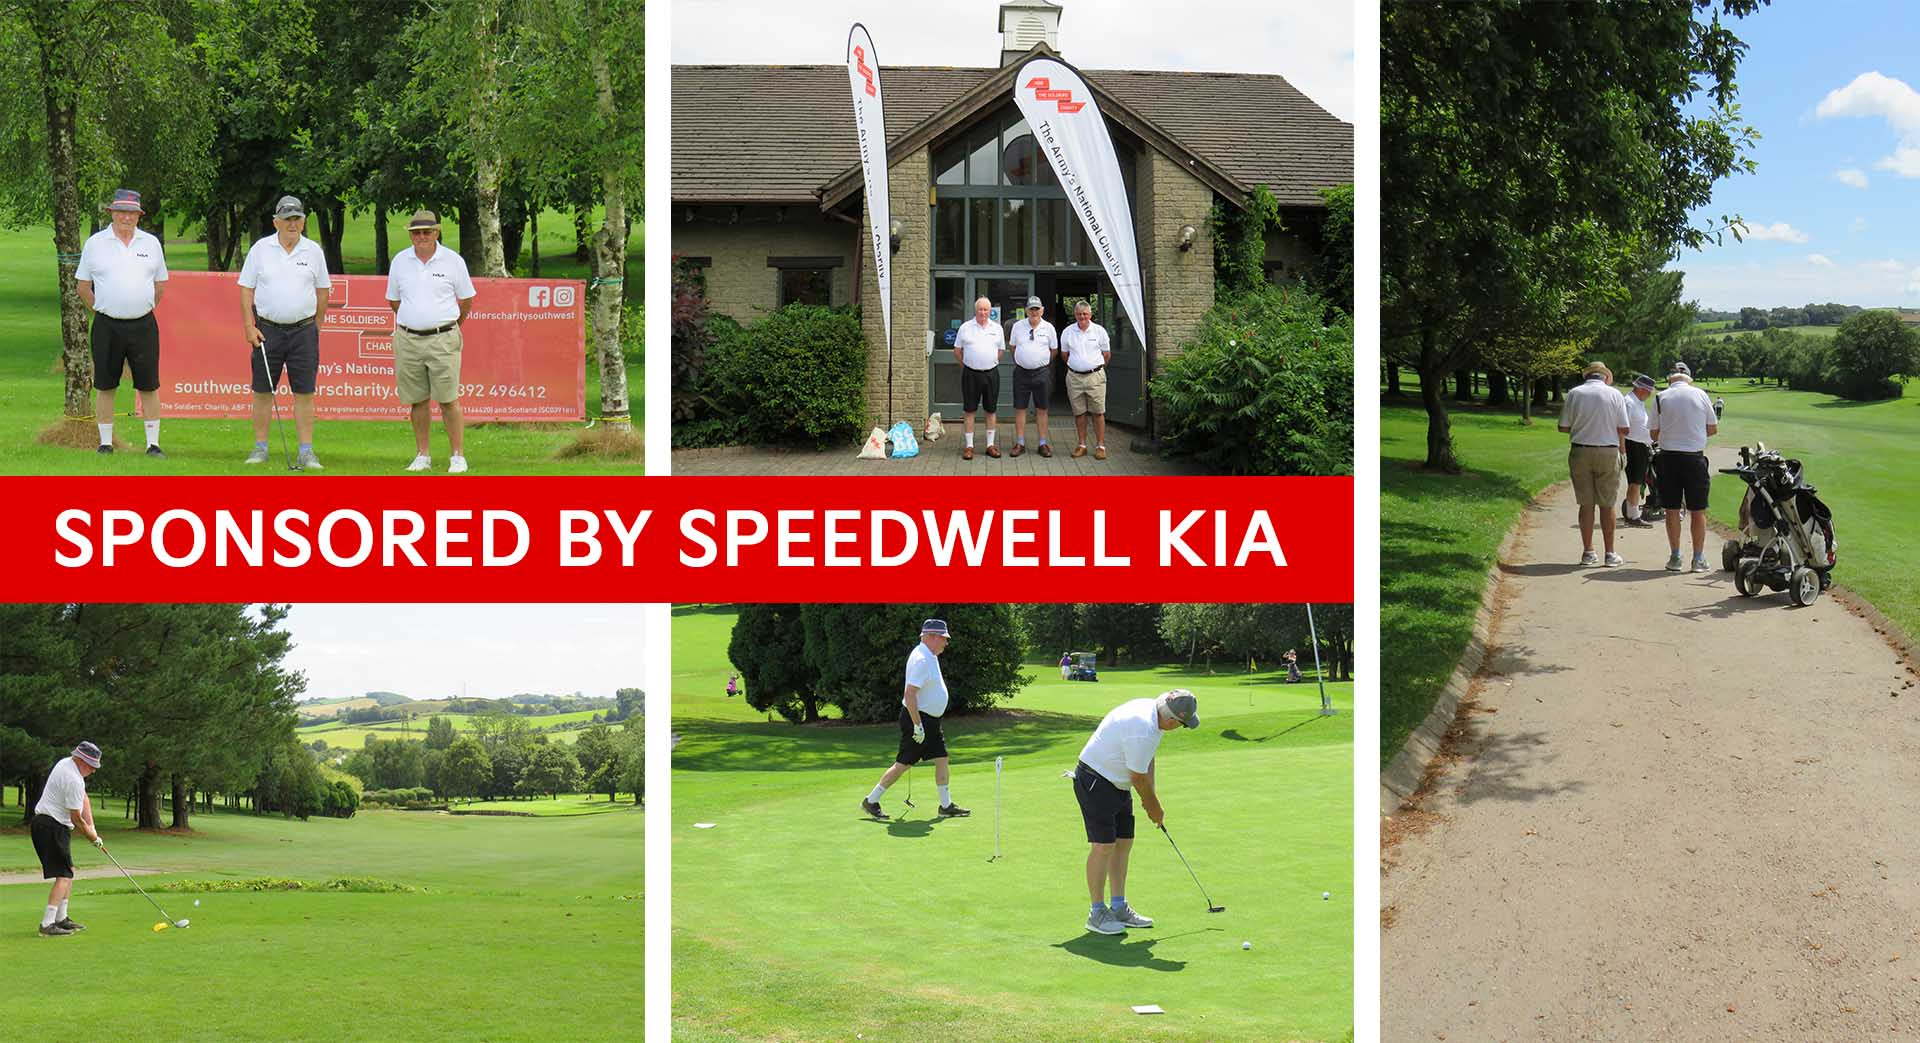 Speedwell Kia sponsoring the ABF - The Army's National Charity